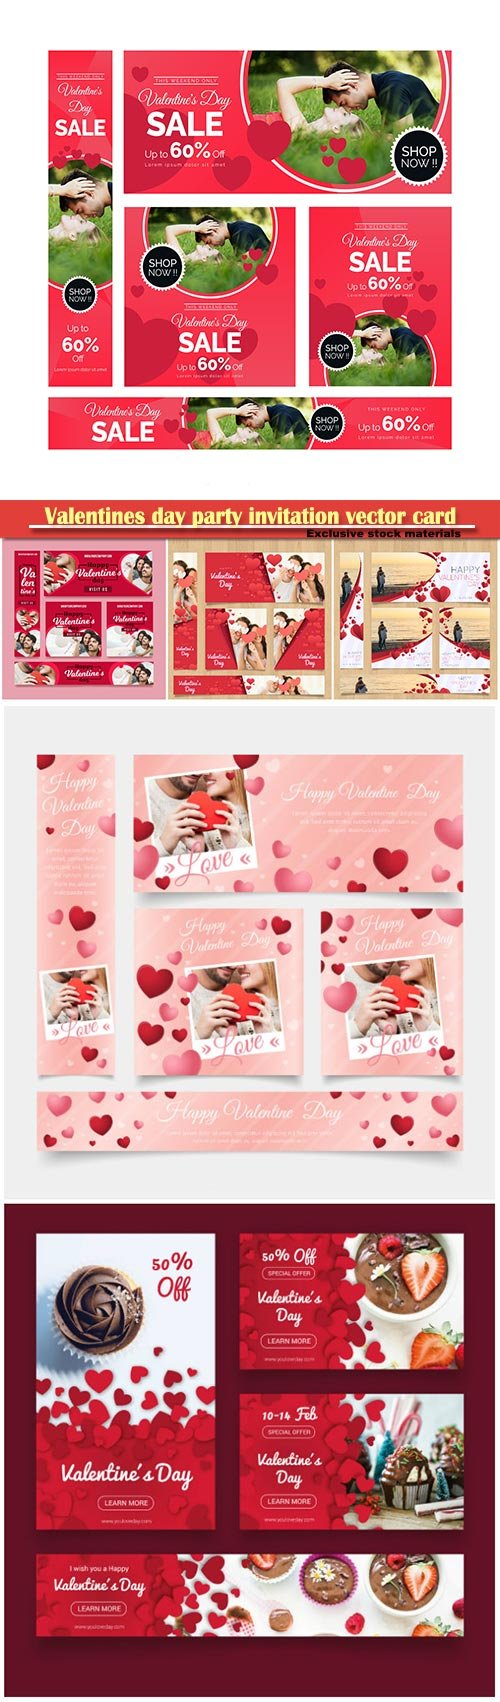 Valentines day party invitation vector card # 55